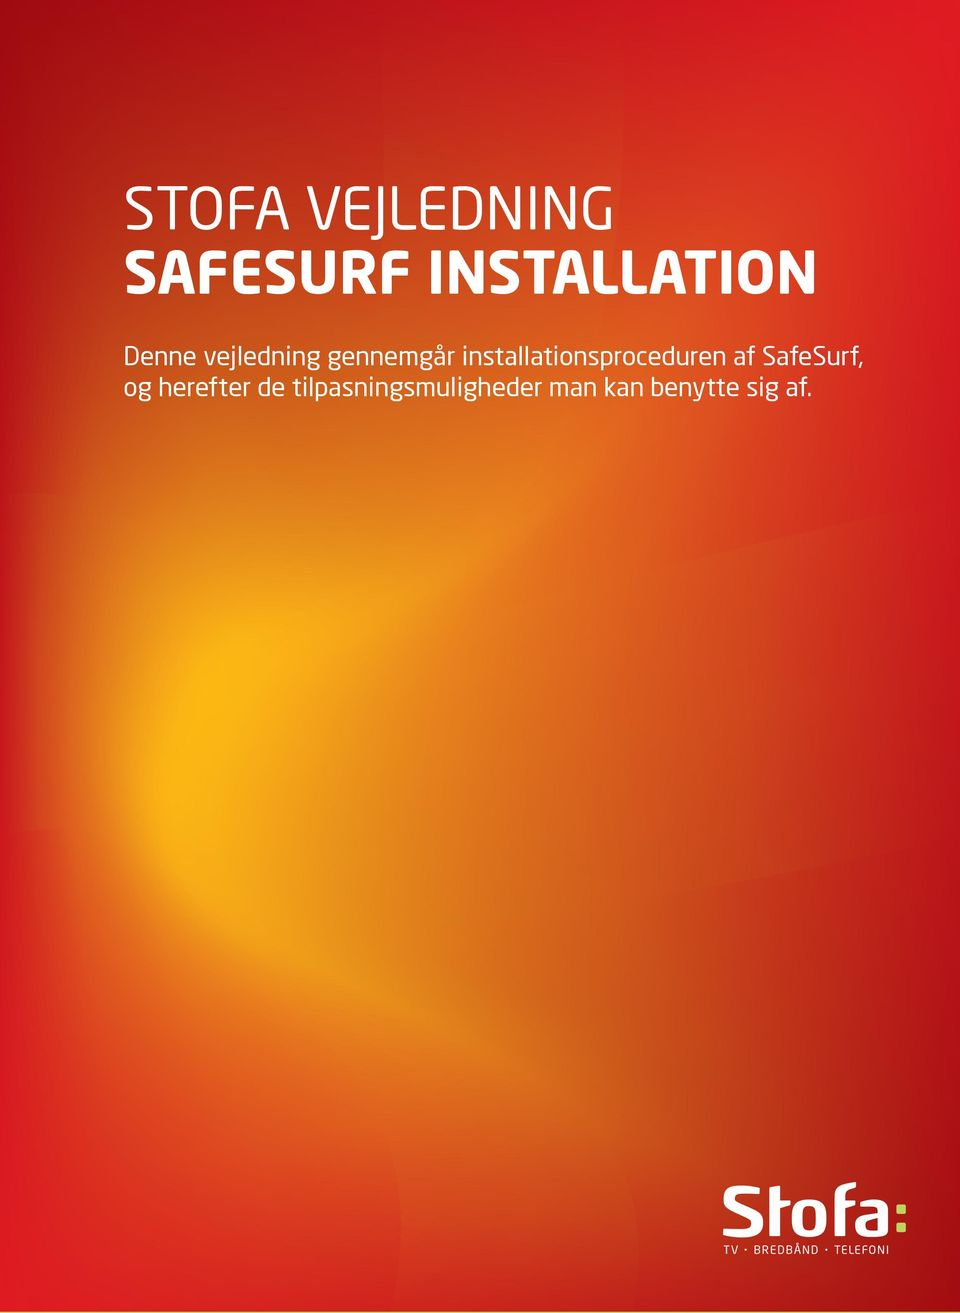 installationsproceduren af SafeSurf, og